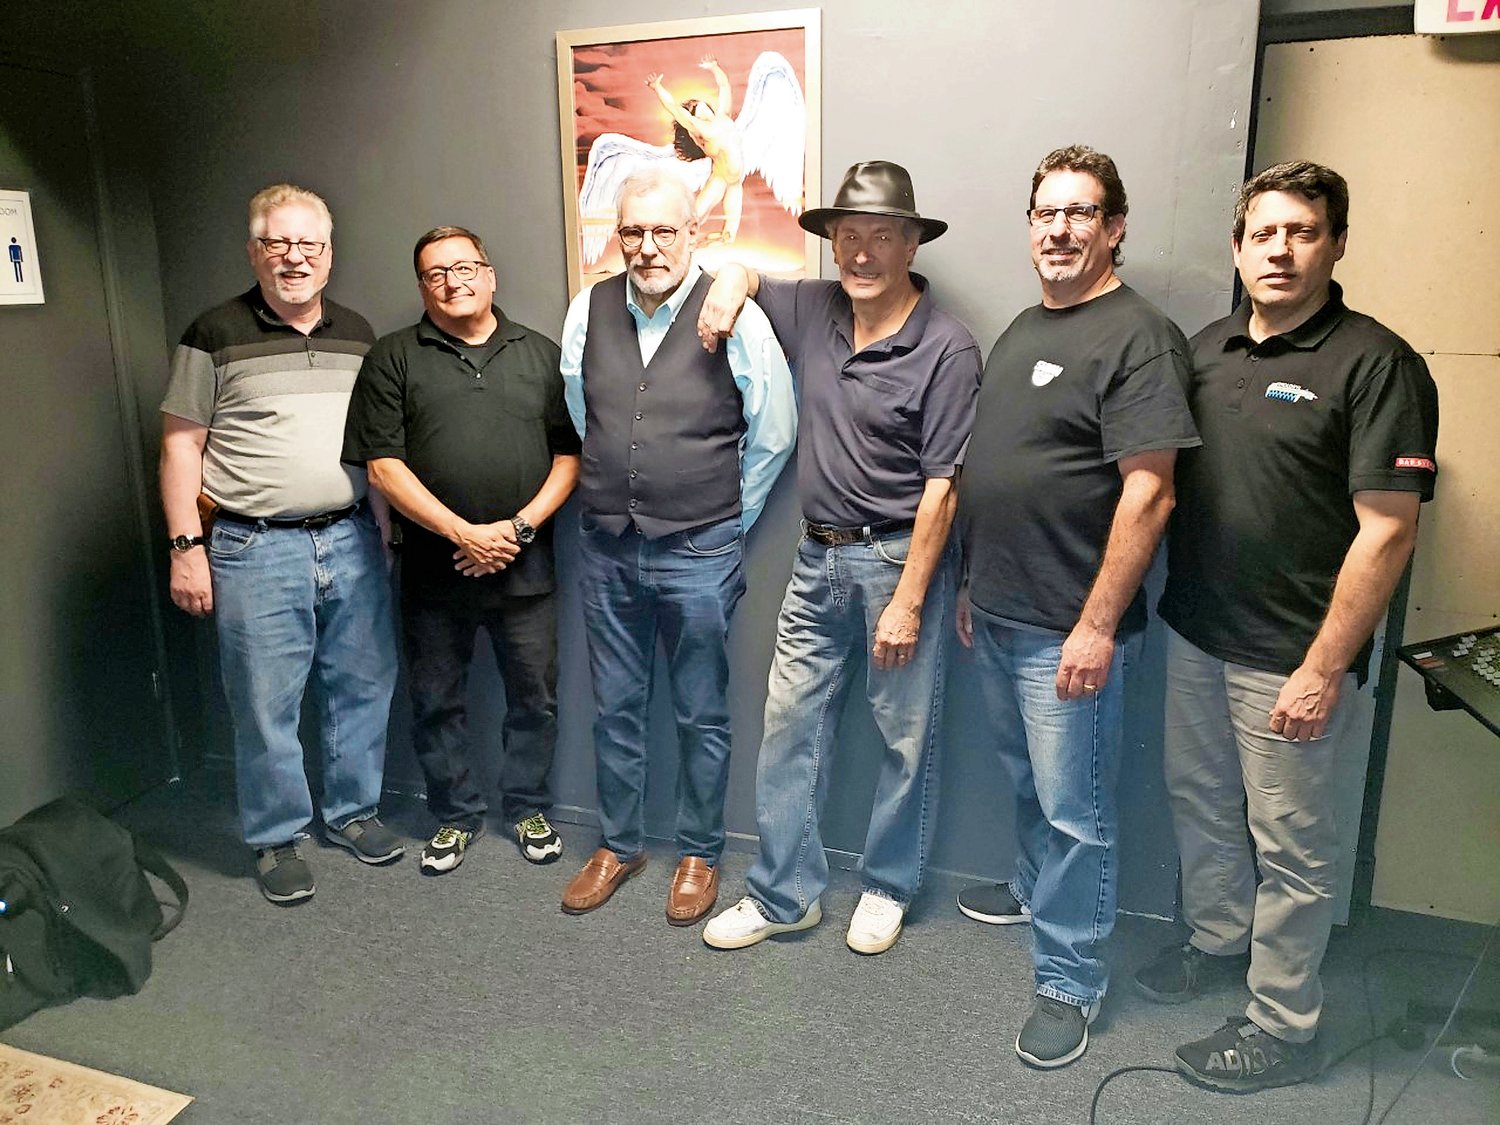 Local band Northern Lights will perform at the event. Above, from left, are Stu Siederman (brass, flute, vocals), Mark Strauss (keyboards, guitar), Rich Jankowitz (vocals, guitar), Joe Geremito (lead vocals, percussion), John Camastra (drums) and Norman Madnick (bass guitar, vocals).